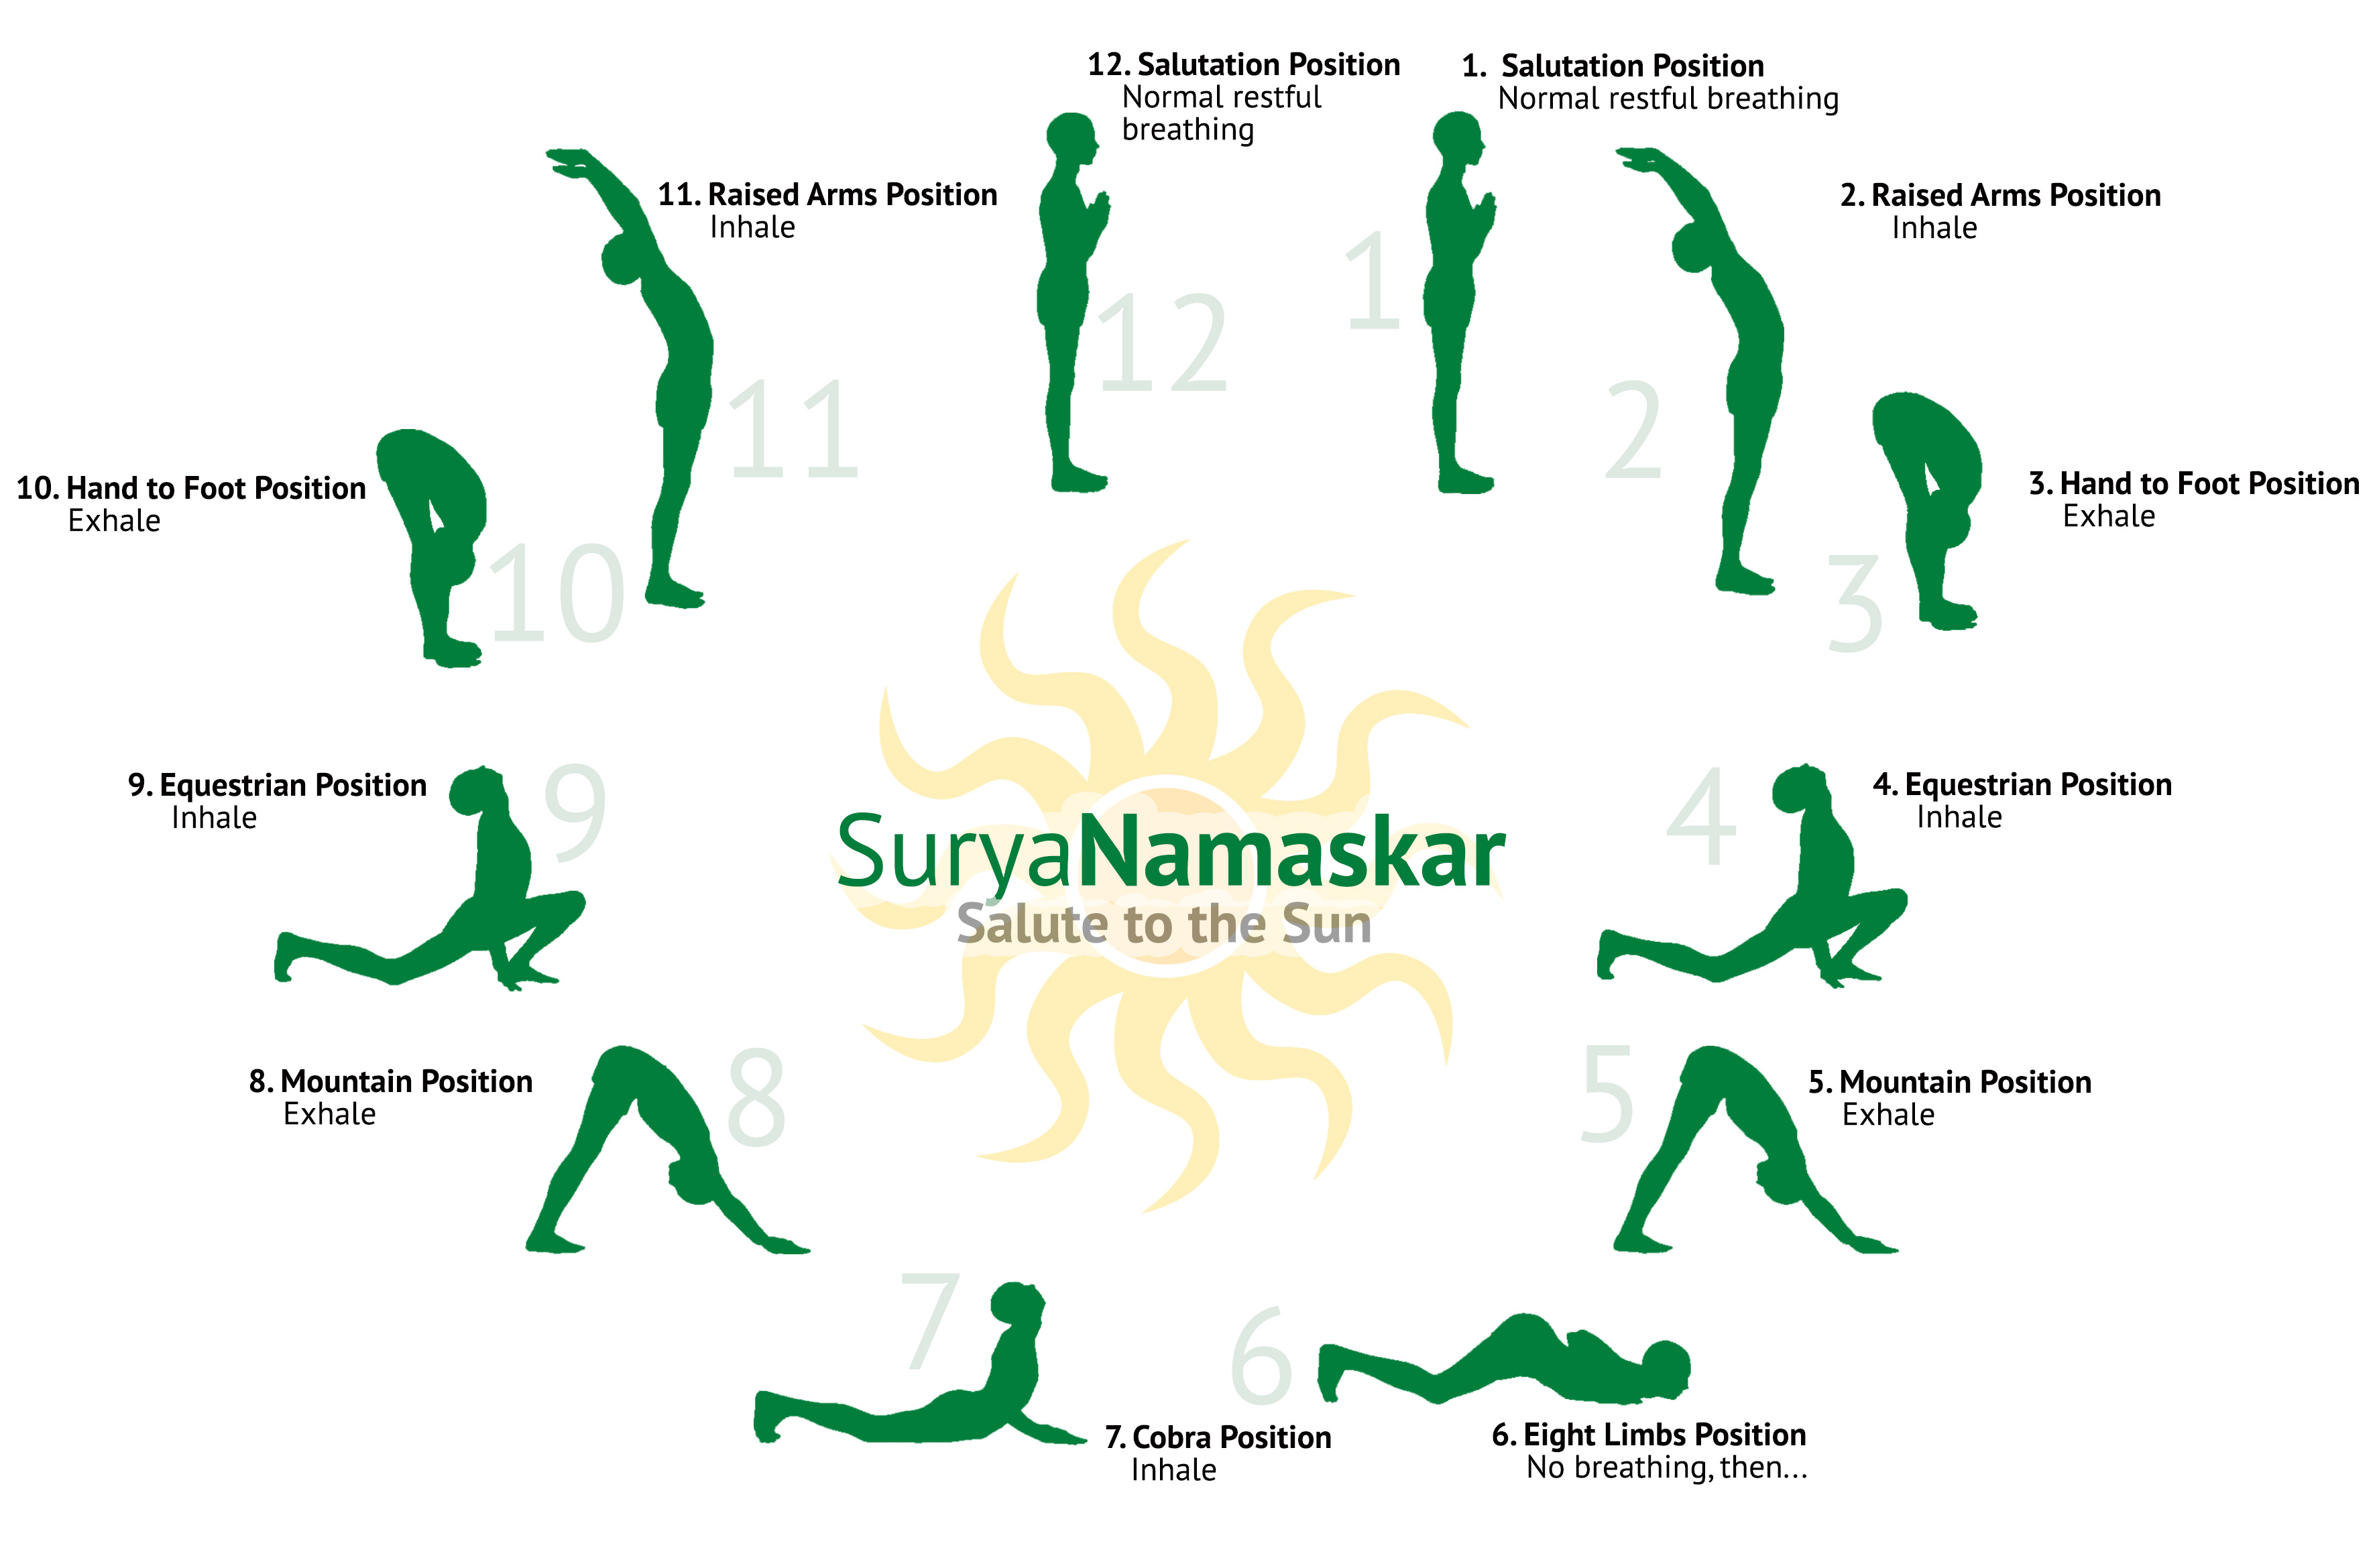 urya Namaskar or Sun Salutation is a technique from the ancient times.